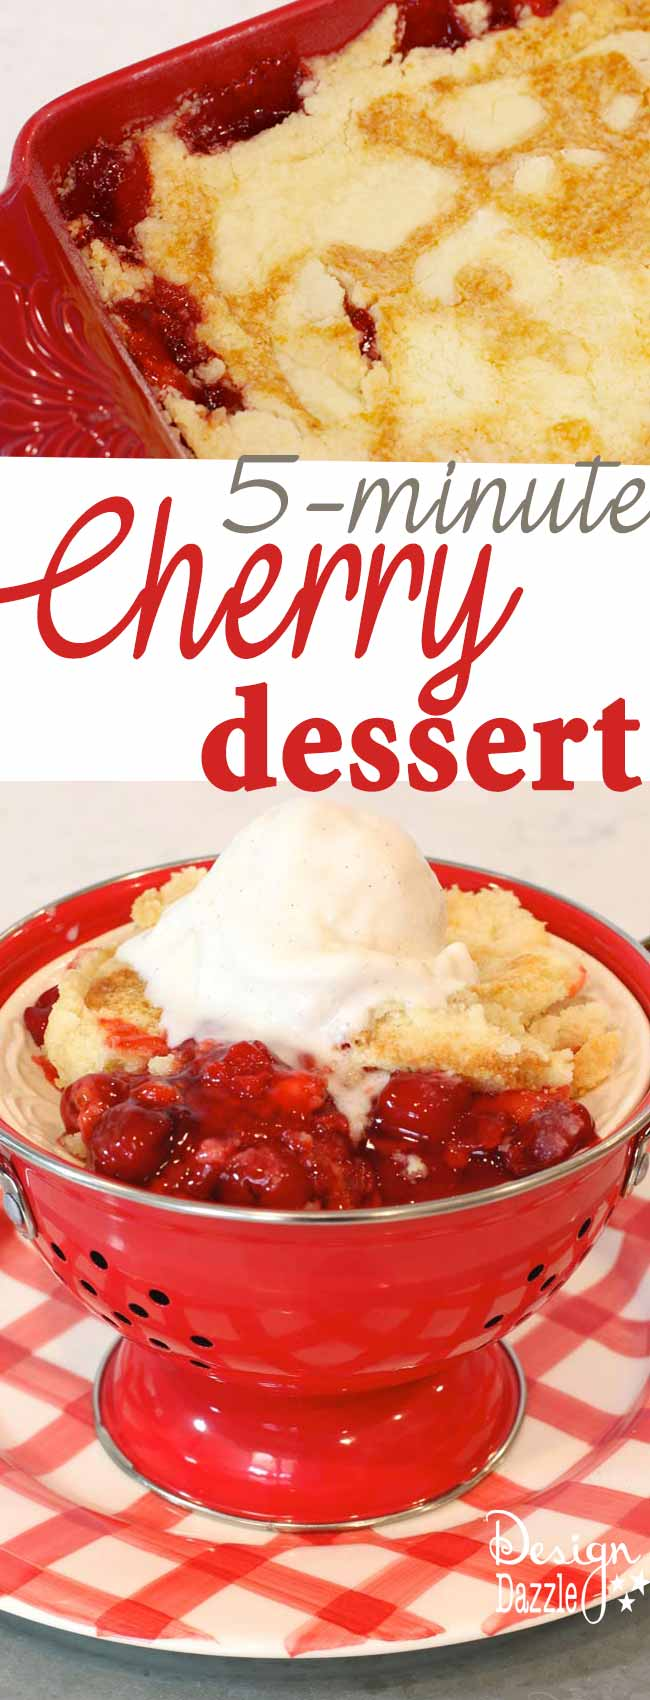 The Easiest Dessert Ever (only 3 ingredients). You will love this dessert - it's super easy and quite yummy!! It only takes 5 minutes to make! | Design Dazzle